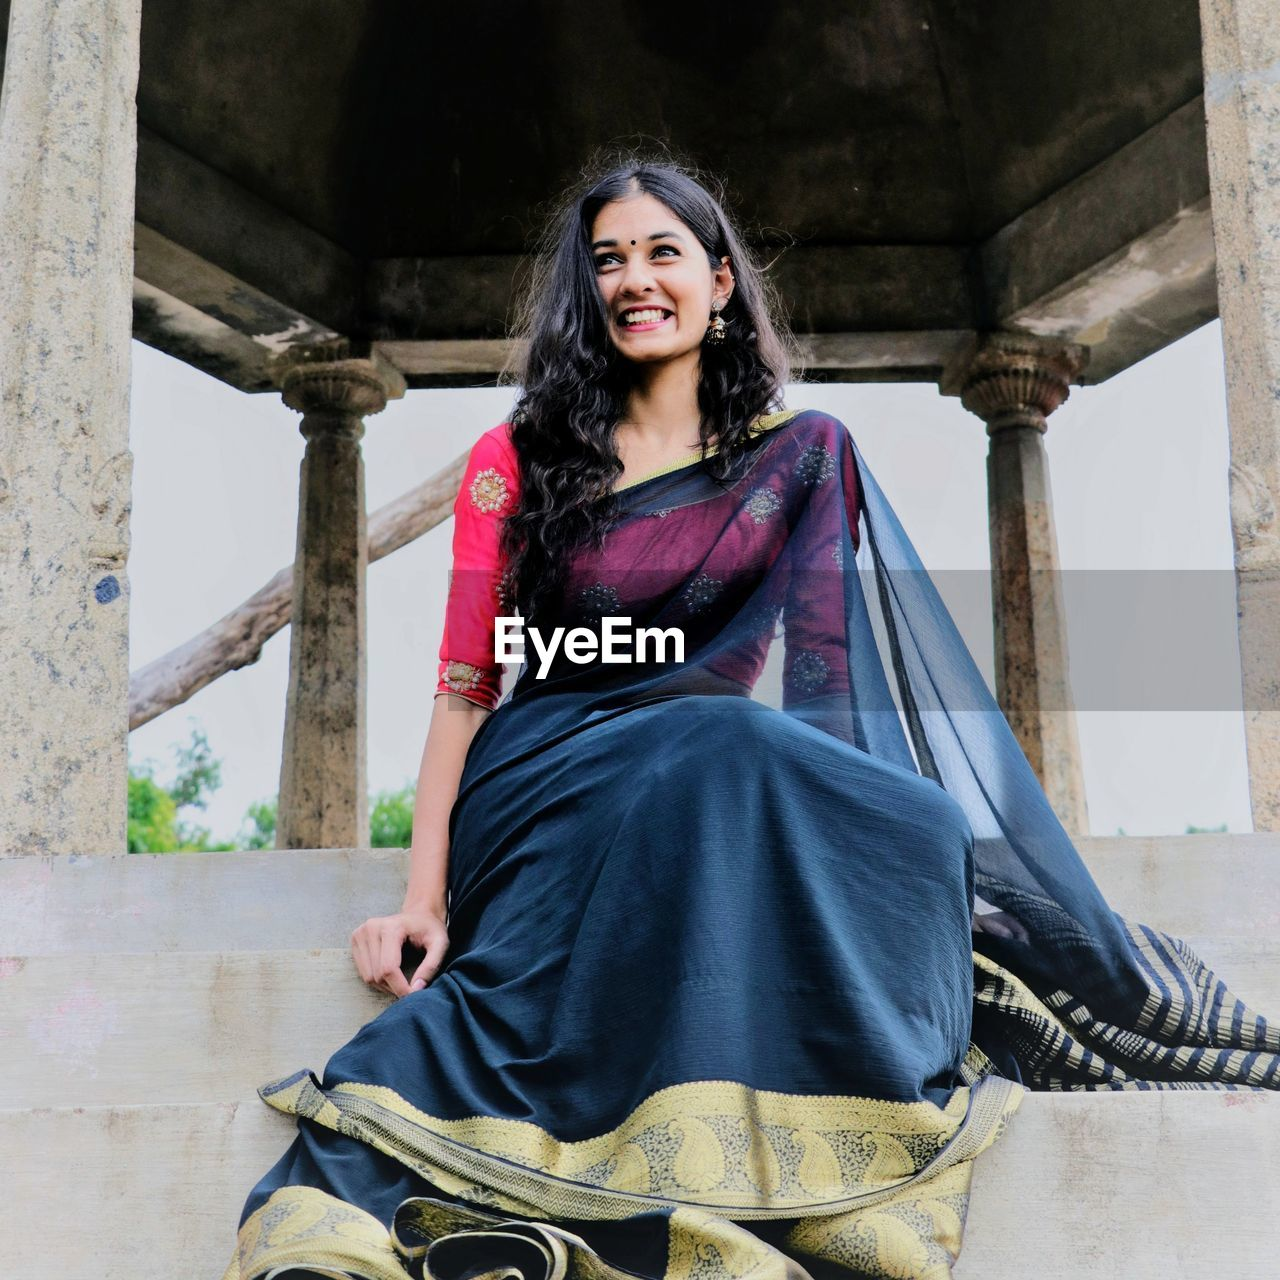 Low Angle View Of Cheerful Woman Wearing Sari While Sitting On Steps